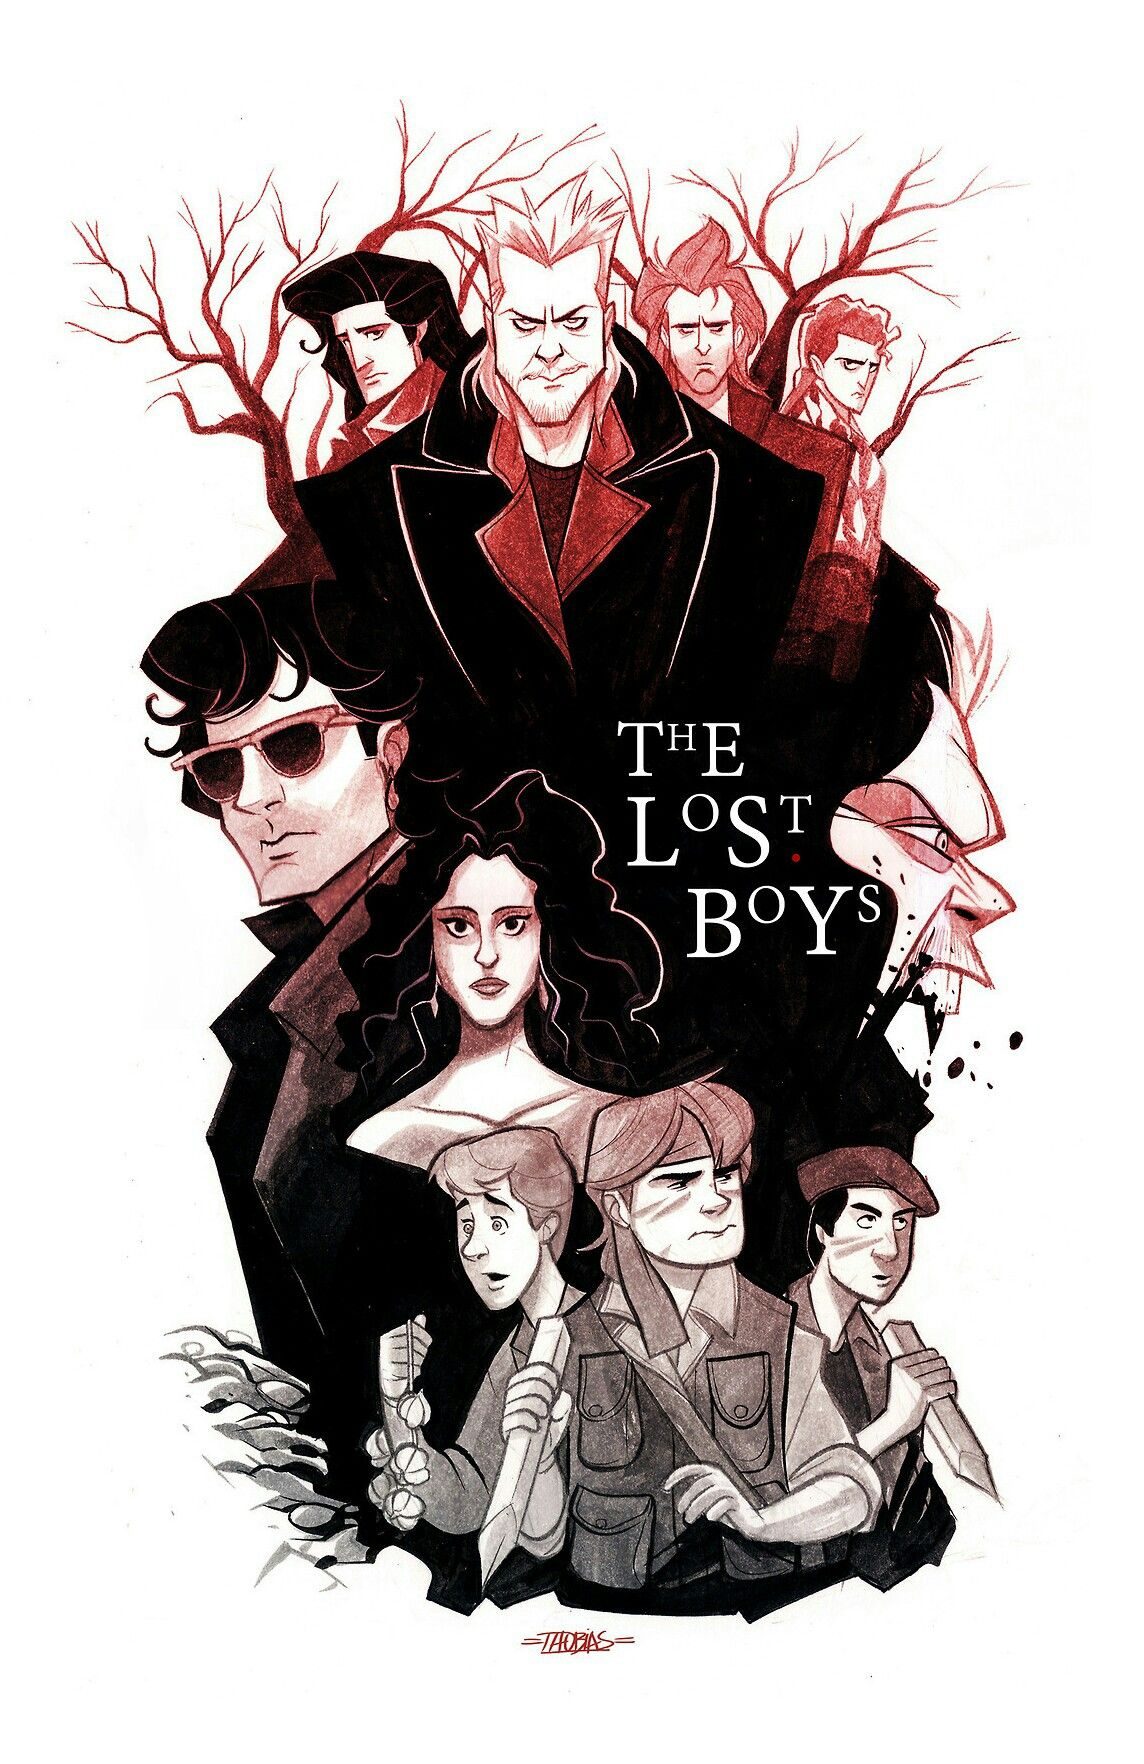 The Lost Boys With Images Lost Boys Movie Lost Boys Movies For Boys